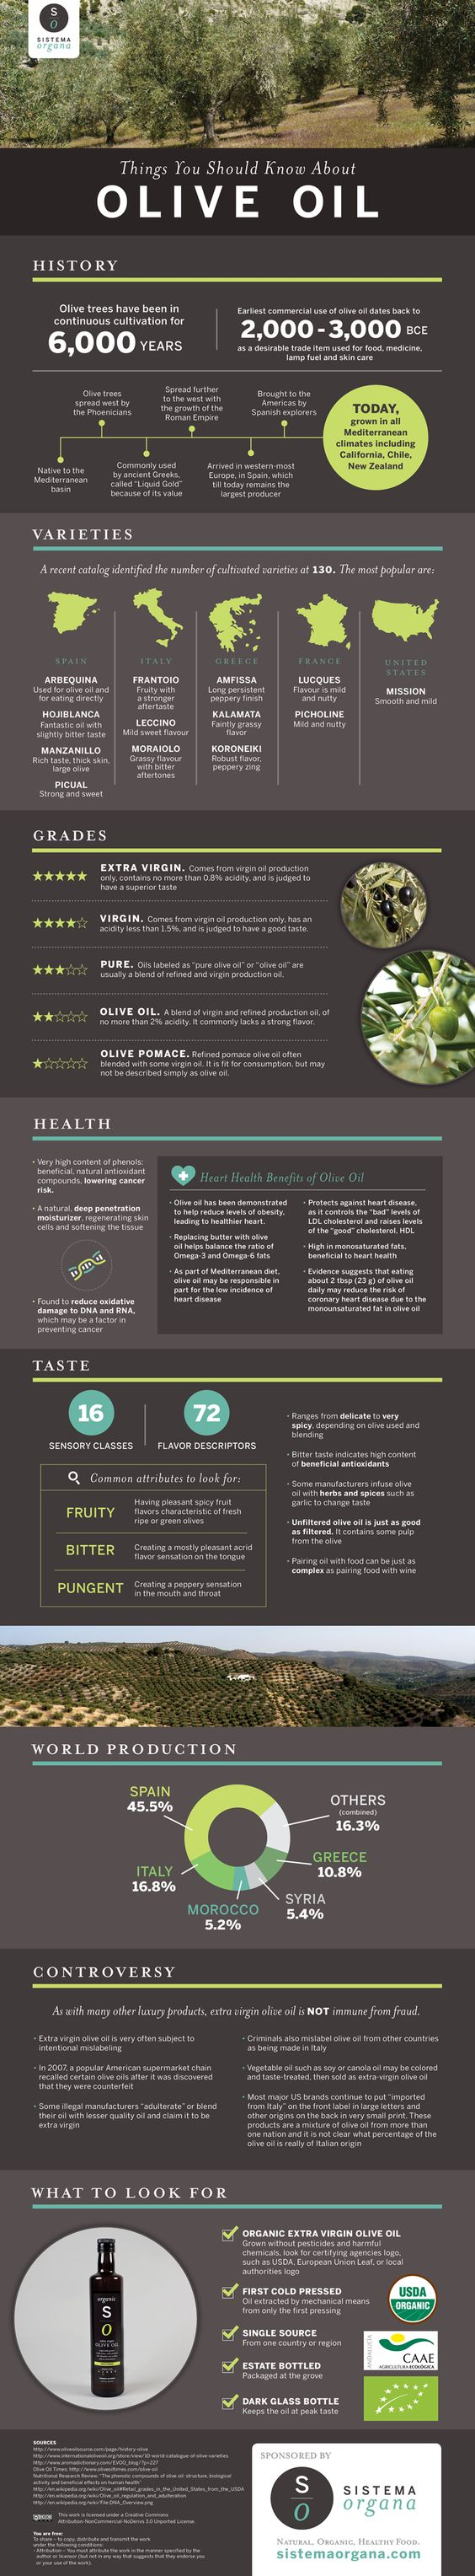 Things-You-Should-Know-About-Olive-Oil-Infographic.jpg